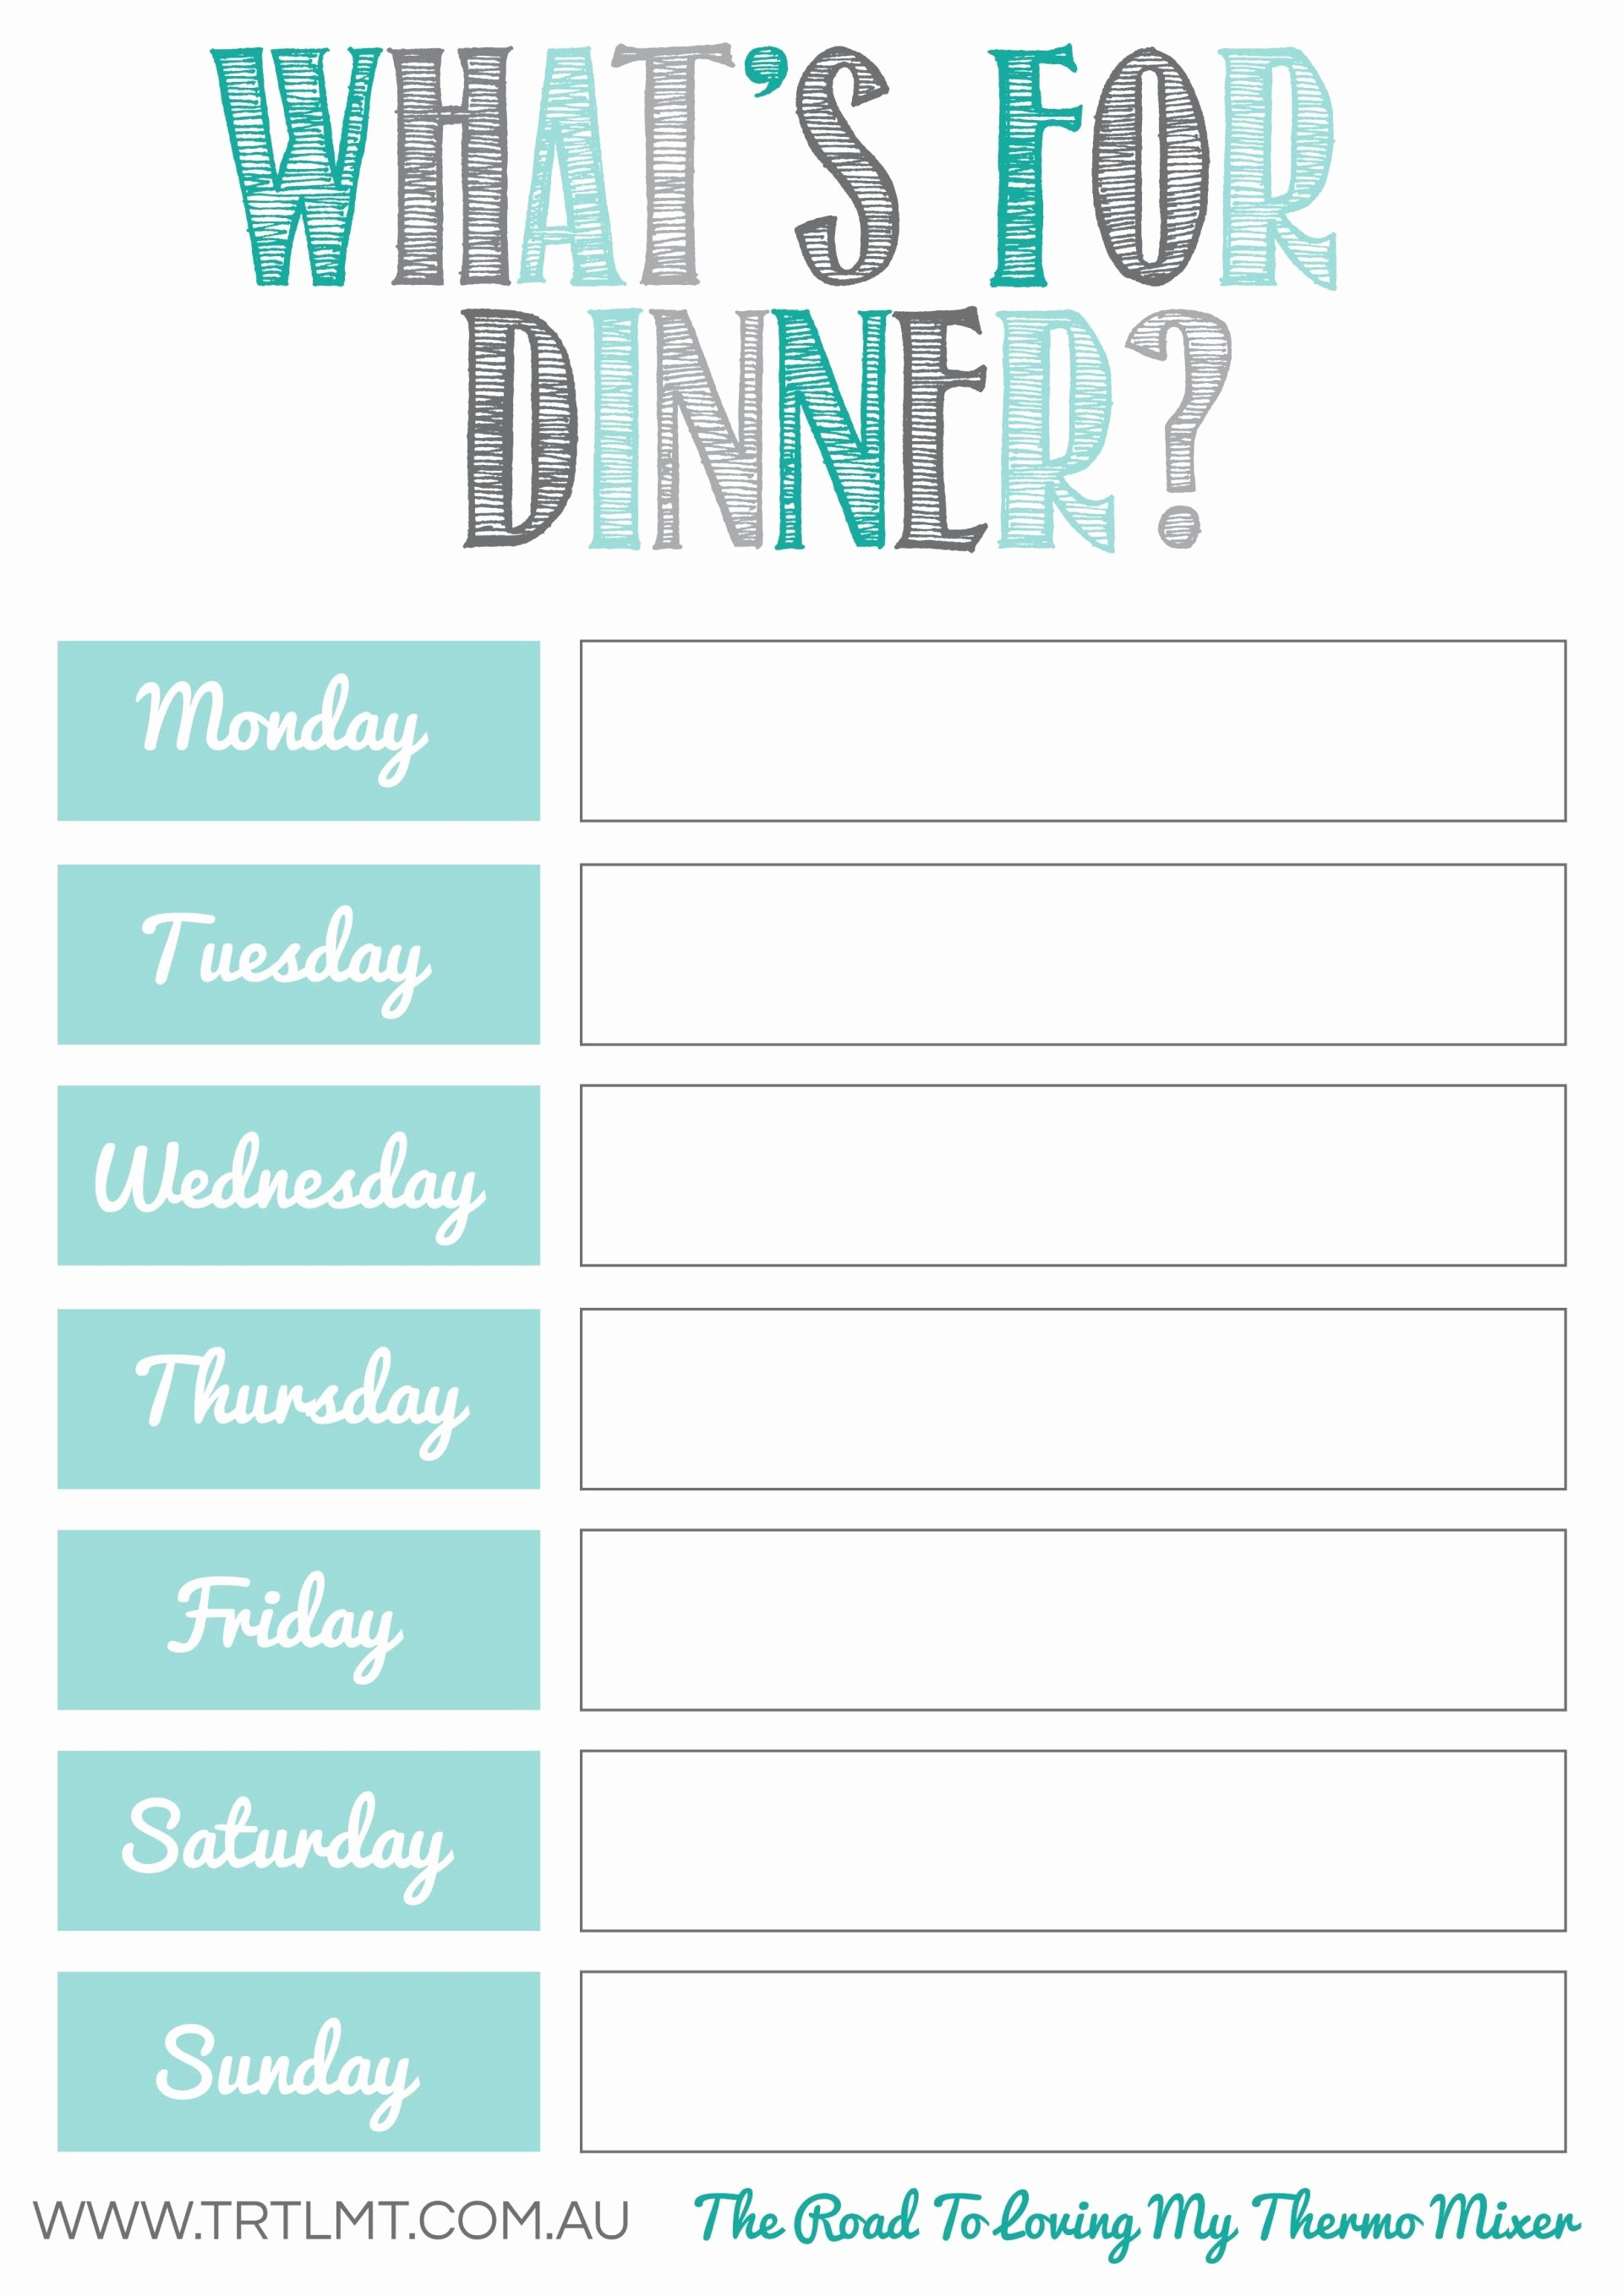 Free Meal Planner Template Download Beautiful What S for Dinner 2 Fb organization Pinterest